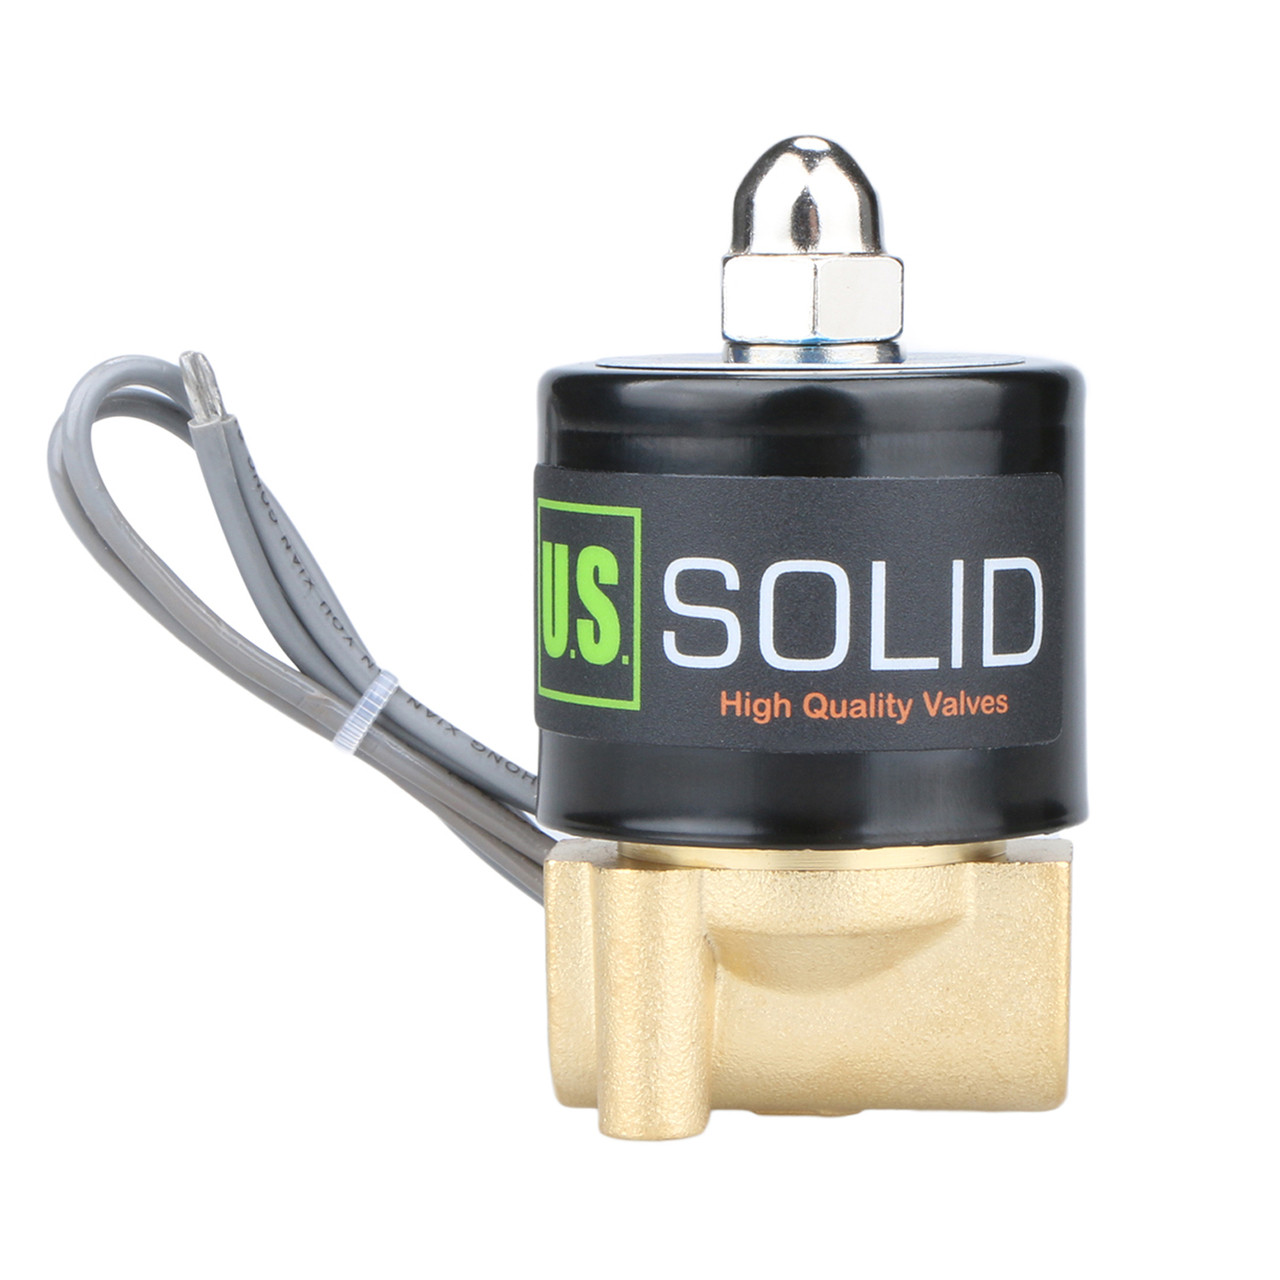 "U.S. Solid Electric Solenoid Valve- 1/8"" 24V DC Solenoid Valve Brass Body Normally Closed, VITON SEAL"